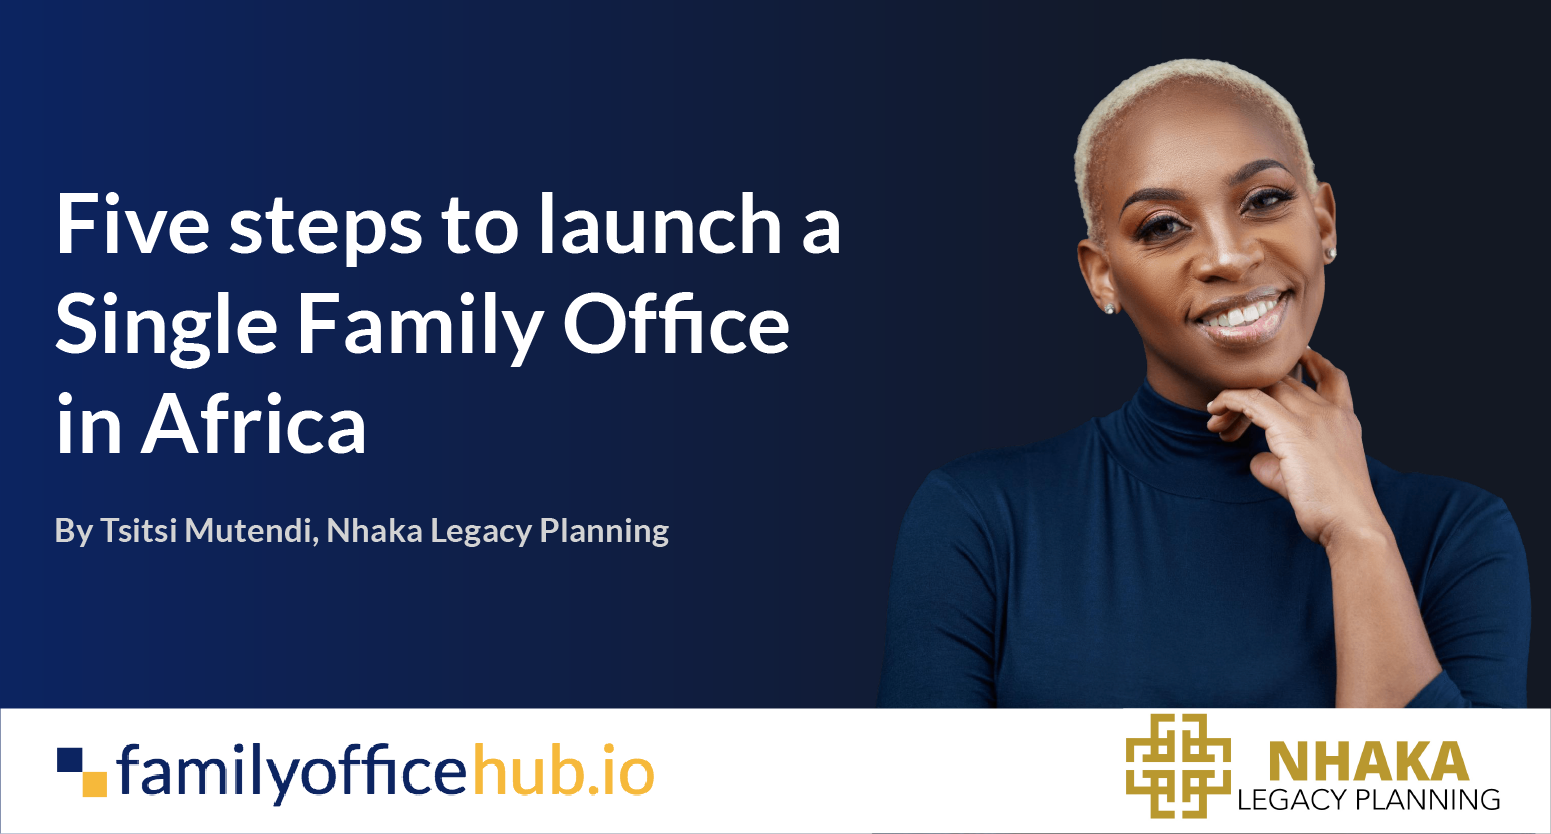 steps to launch a single family office